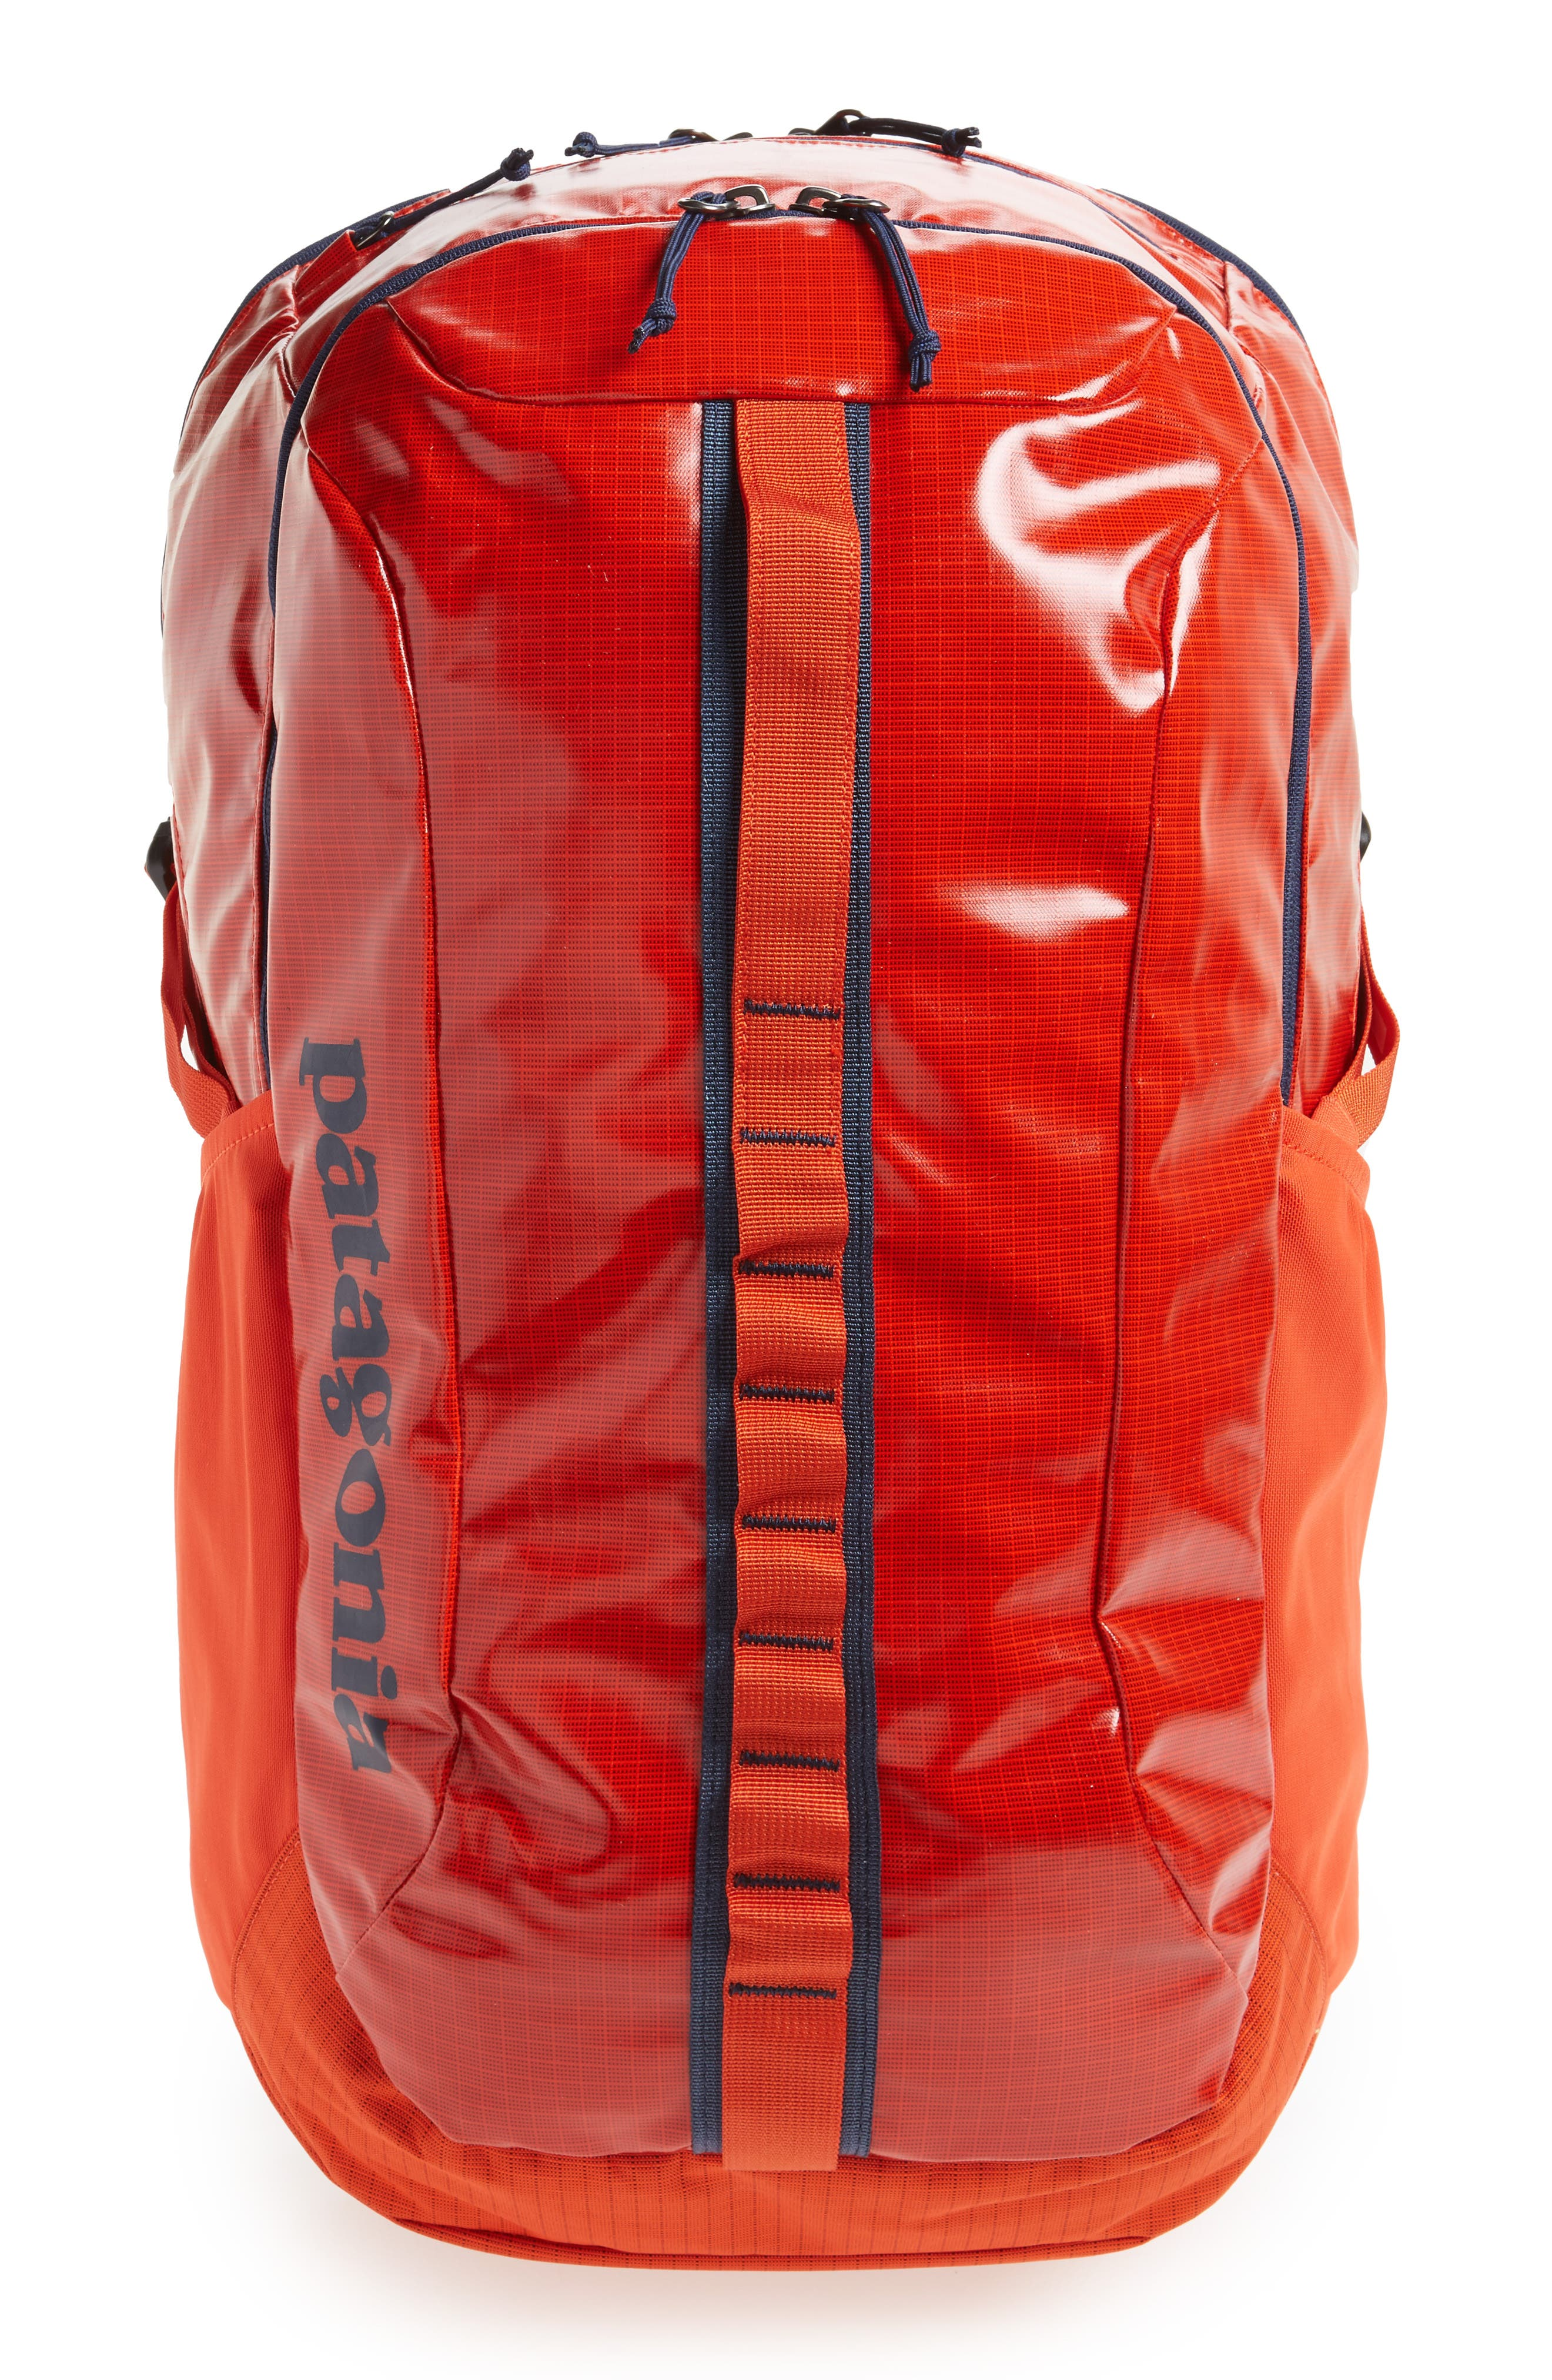 Black Hole 30-Liter Backpack,                             Main thumbnail 1, color,                             Paintbrush Red